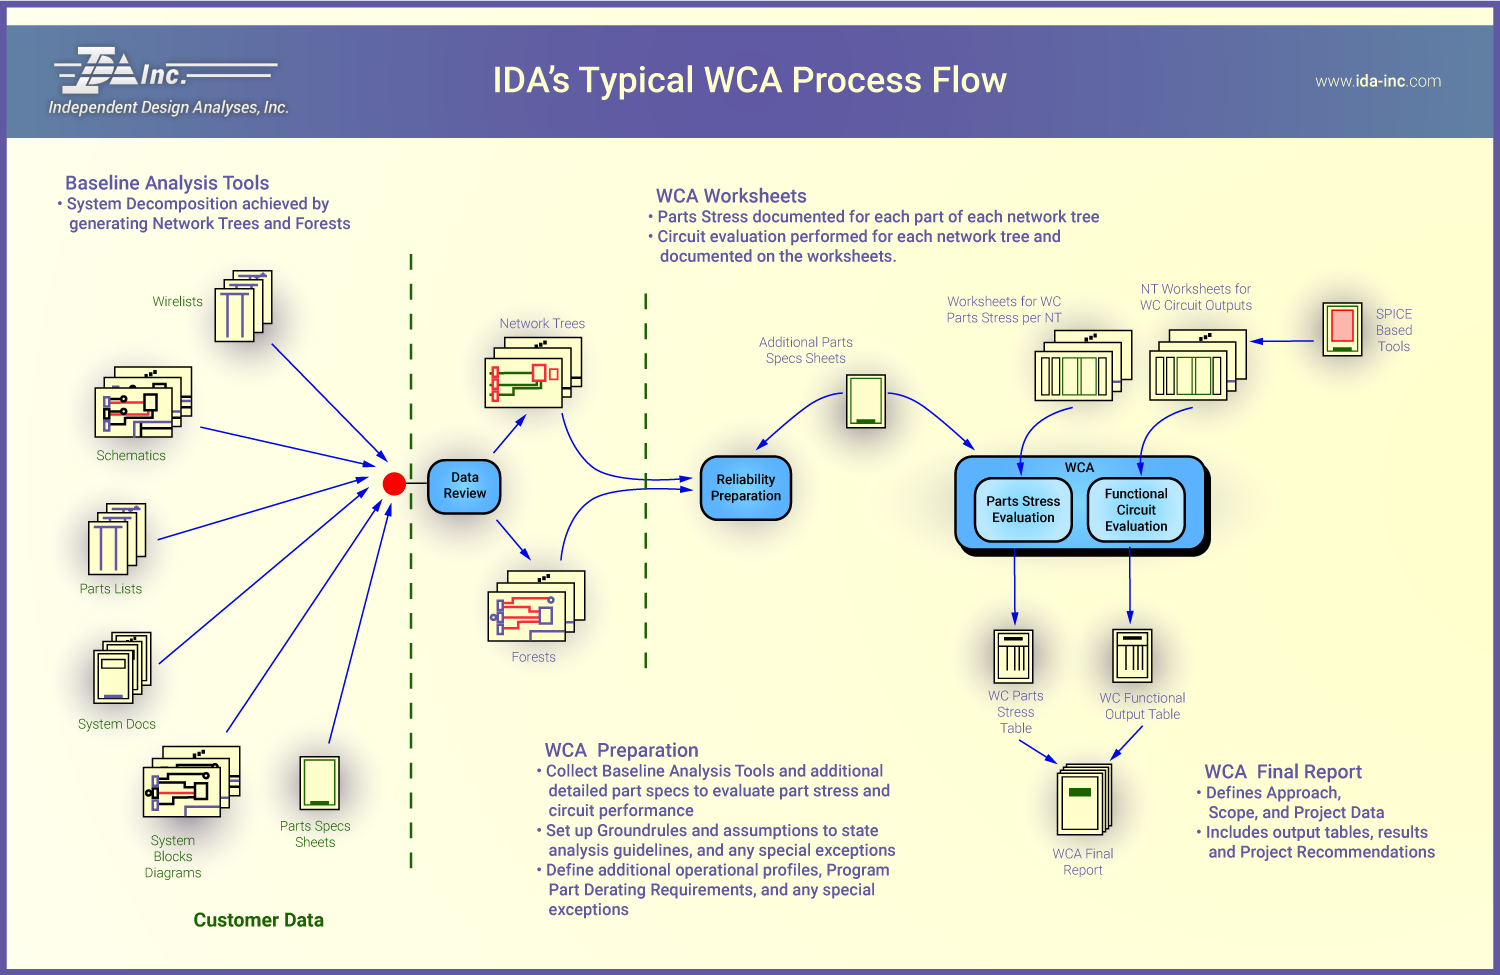 Worst Case Analysis Process Flow - IDA Inc